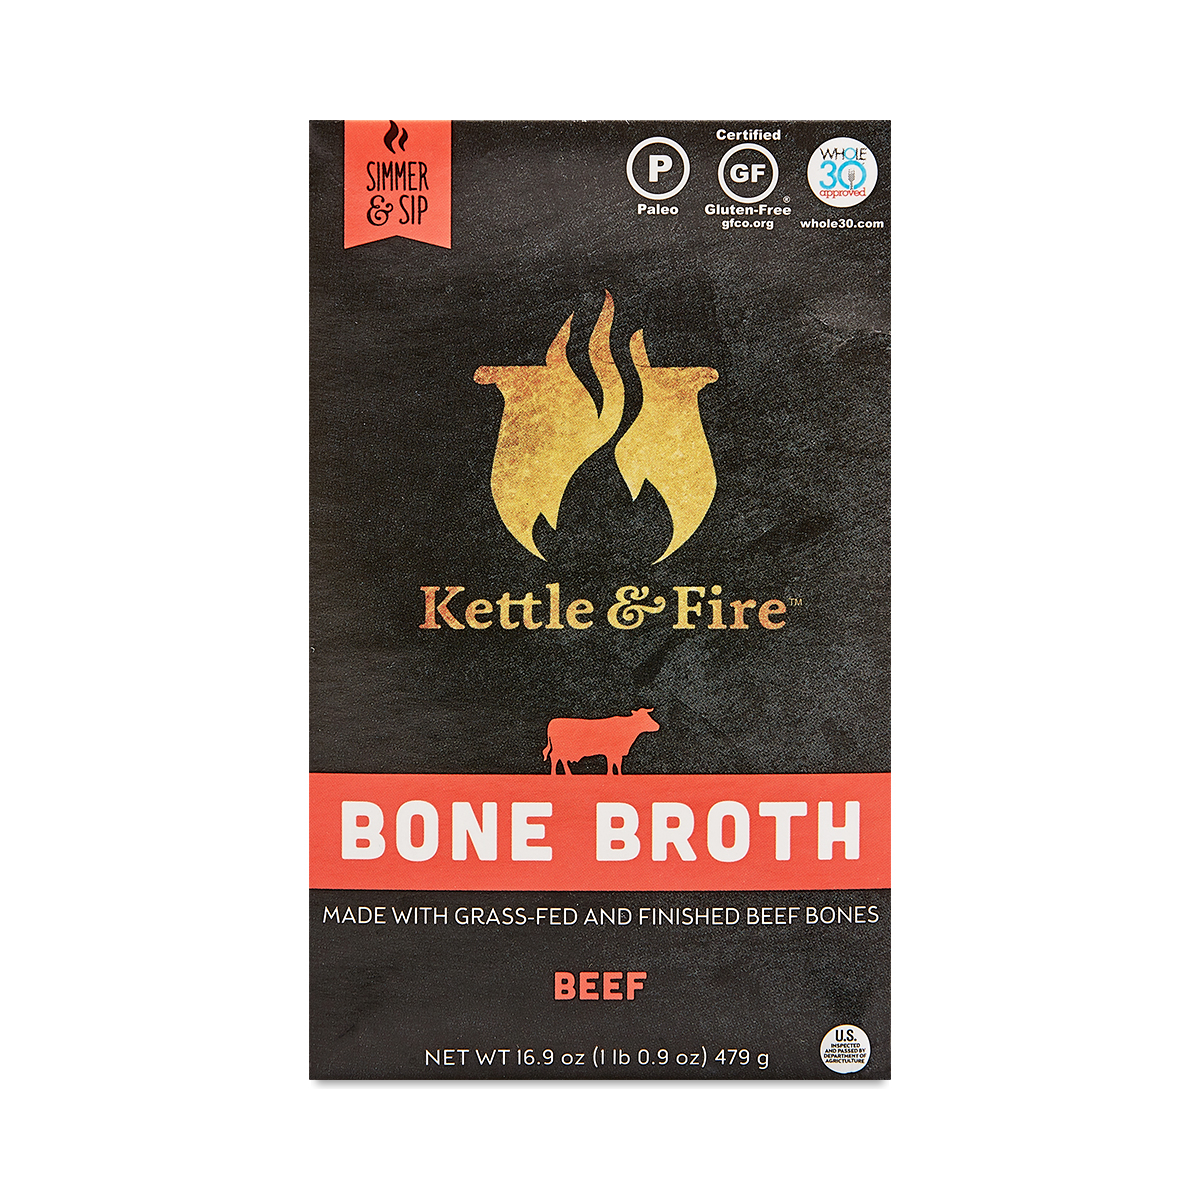 Kettle & Fire Grass-Fed Beef Bone Broth 16.2 oz carton